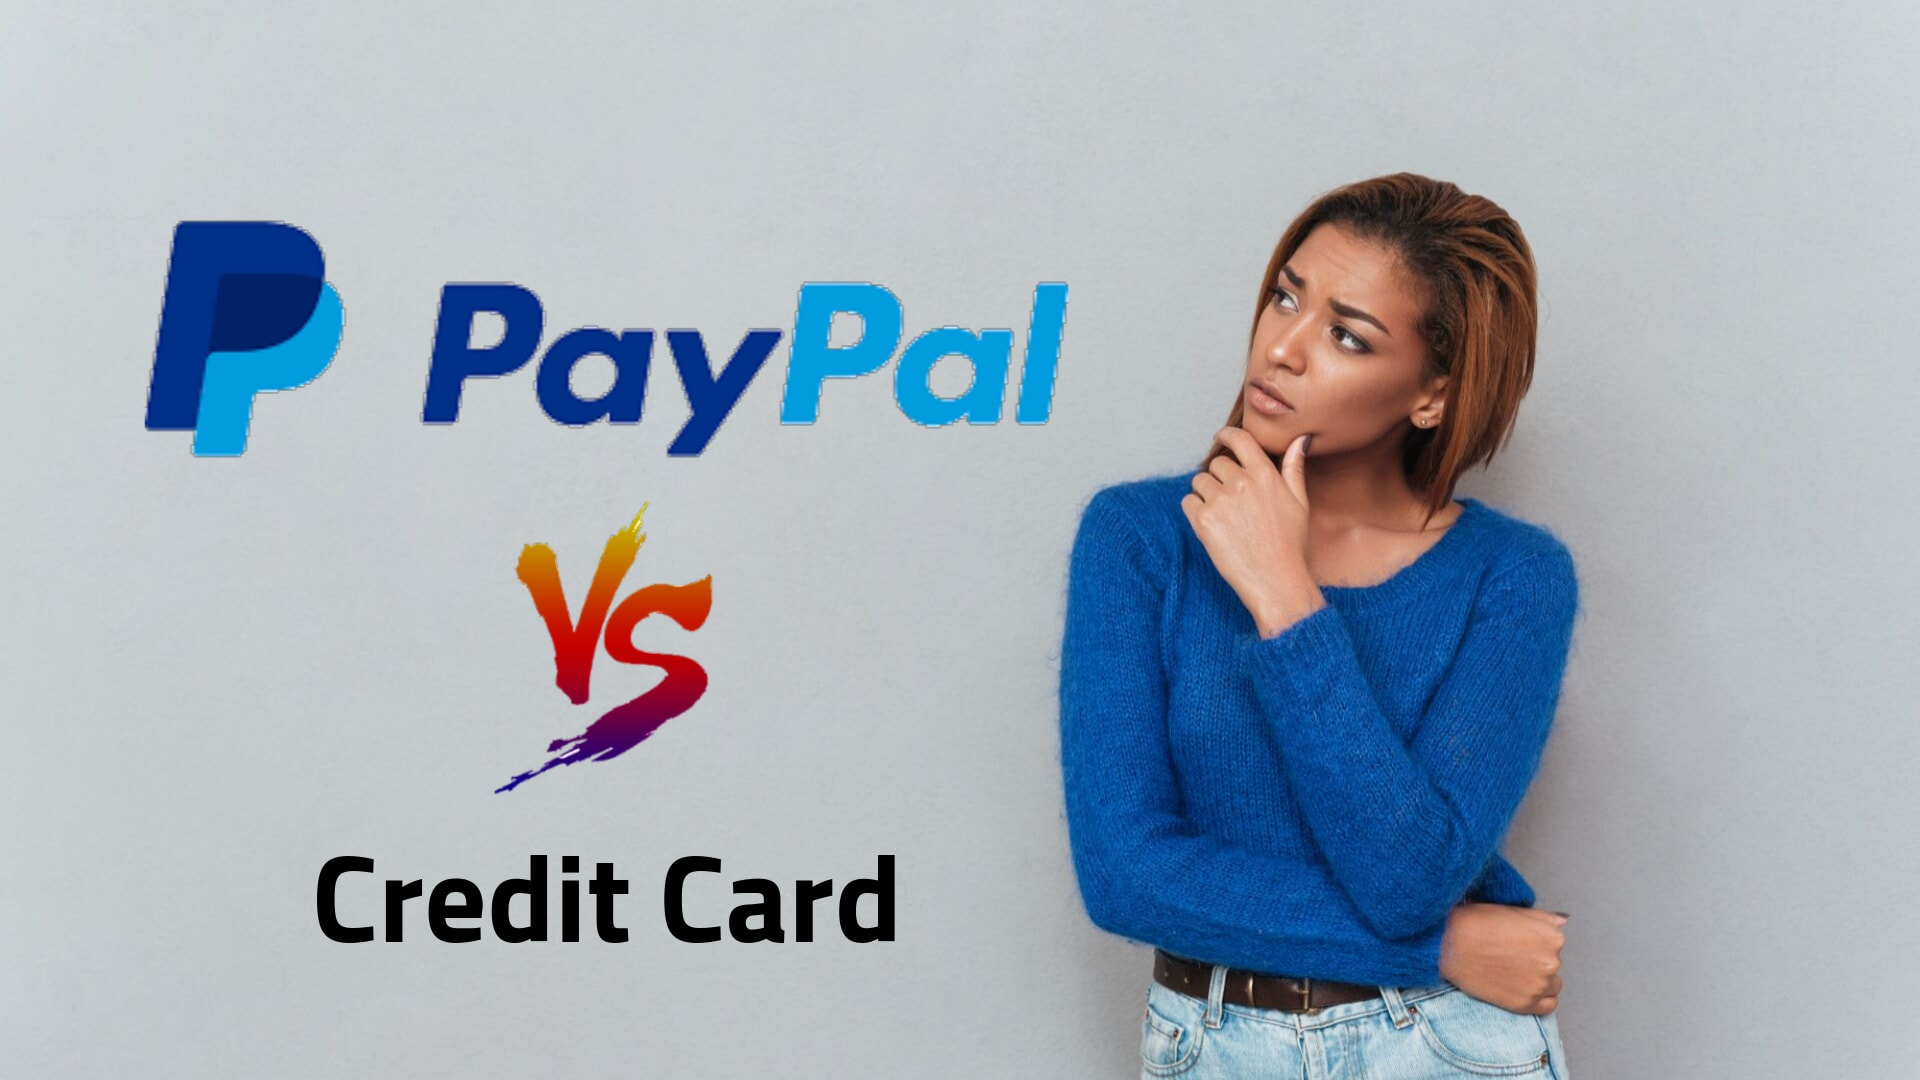 PayPal vs Credit Card - Is PayPal Safe? Tips For Buying And Selling Online Services